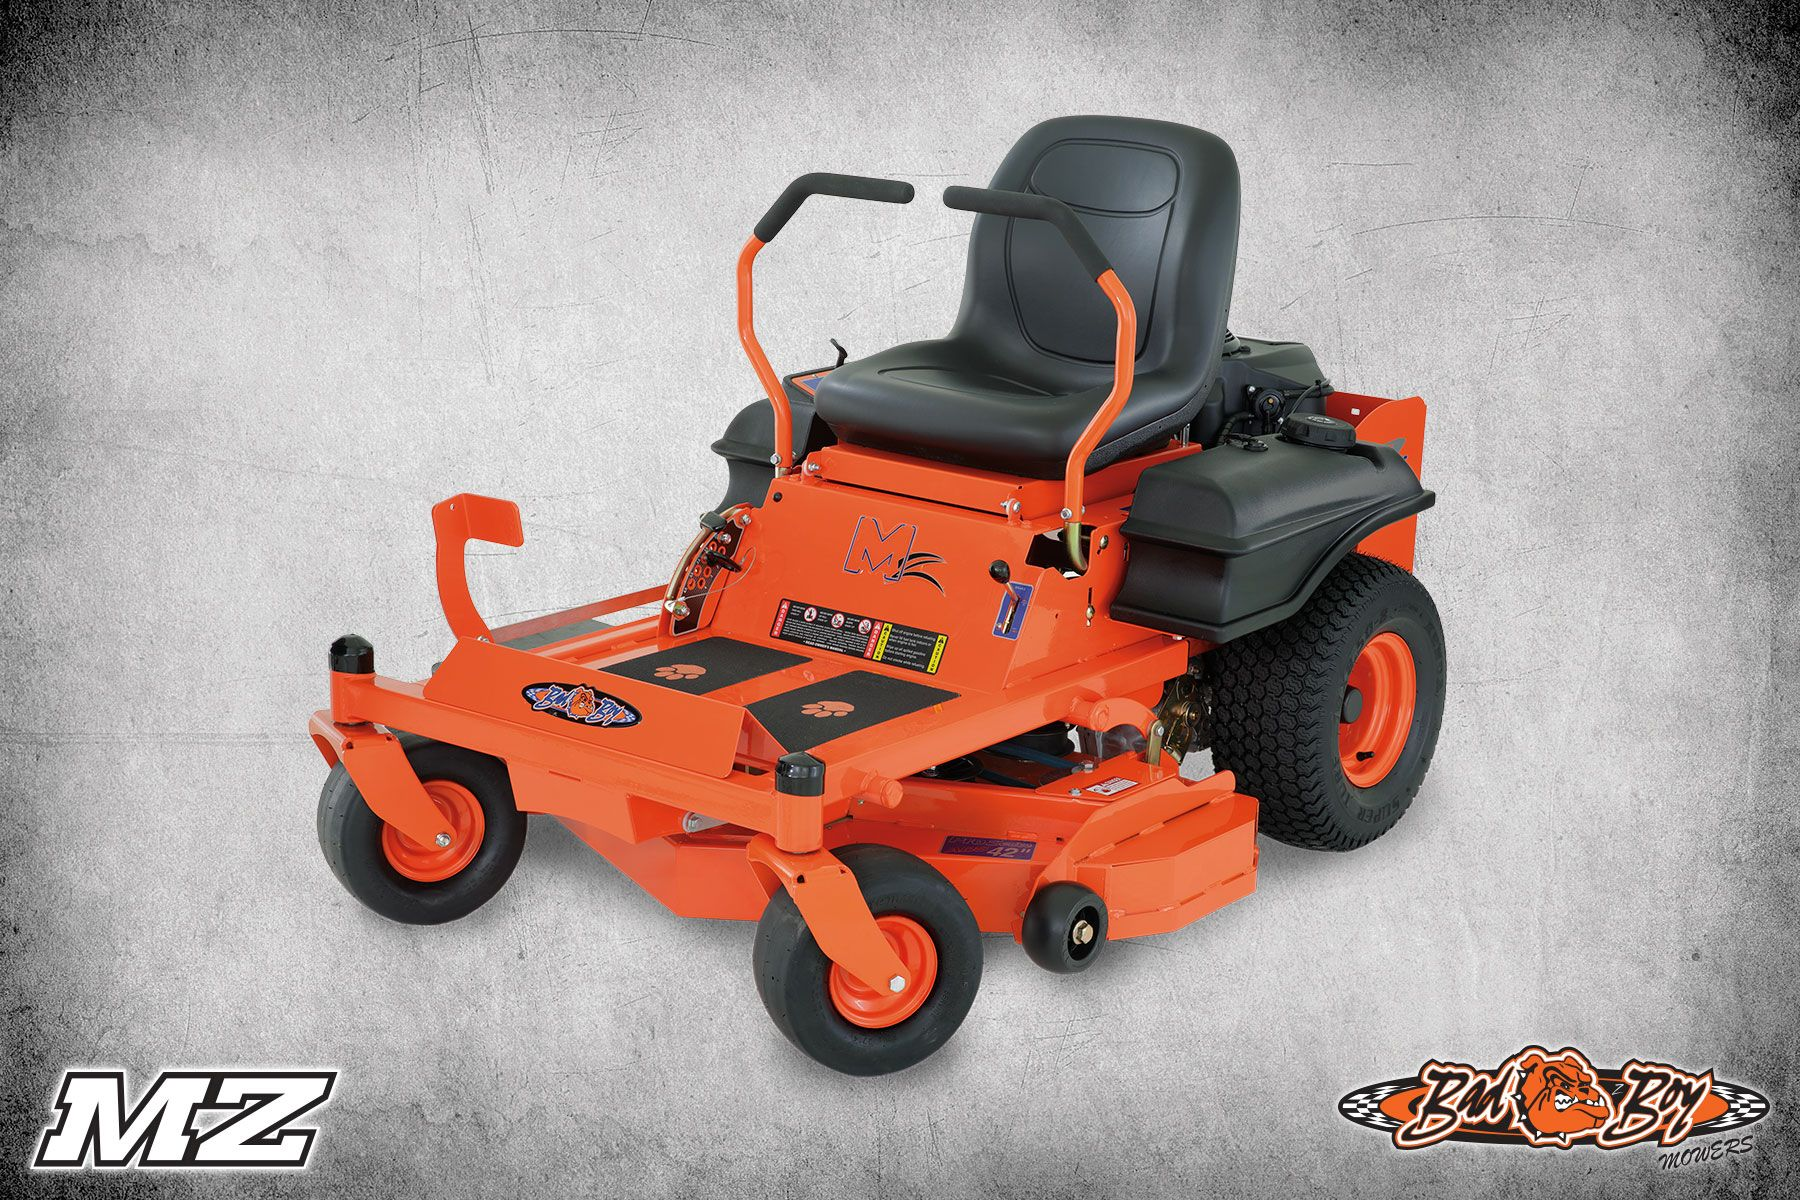 Mz Bad Boy Mowers Small Zero Turn Lawn Mower Zero Turn Lawn Mowers Lawn Mower Mower